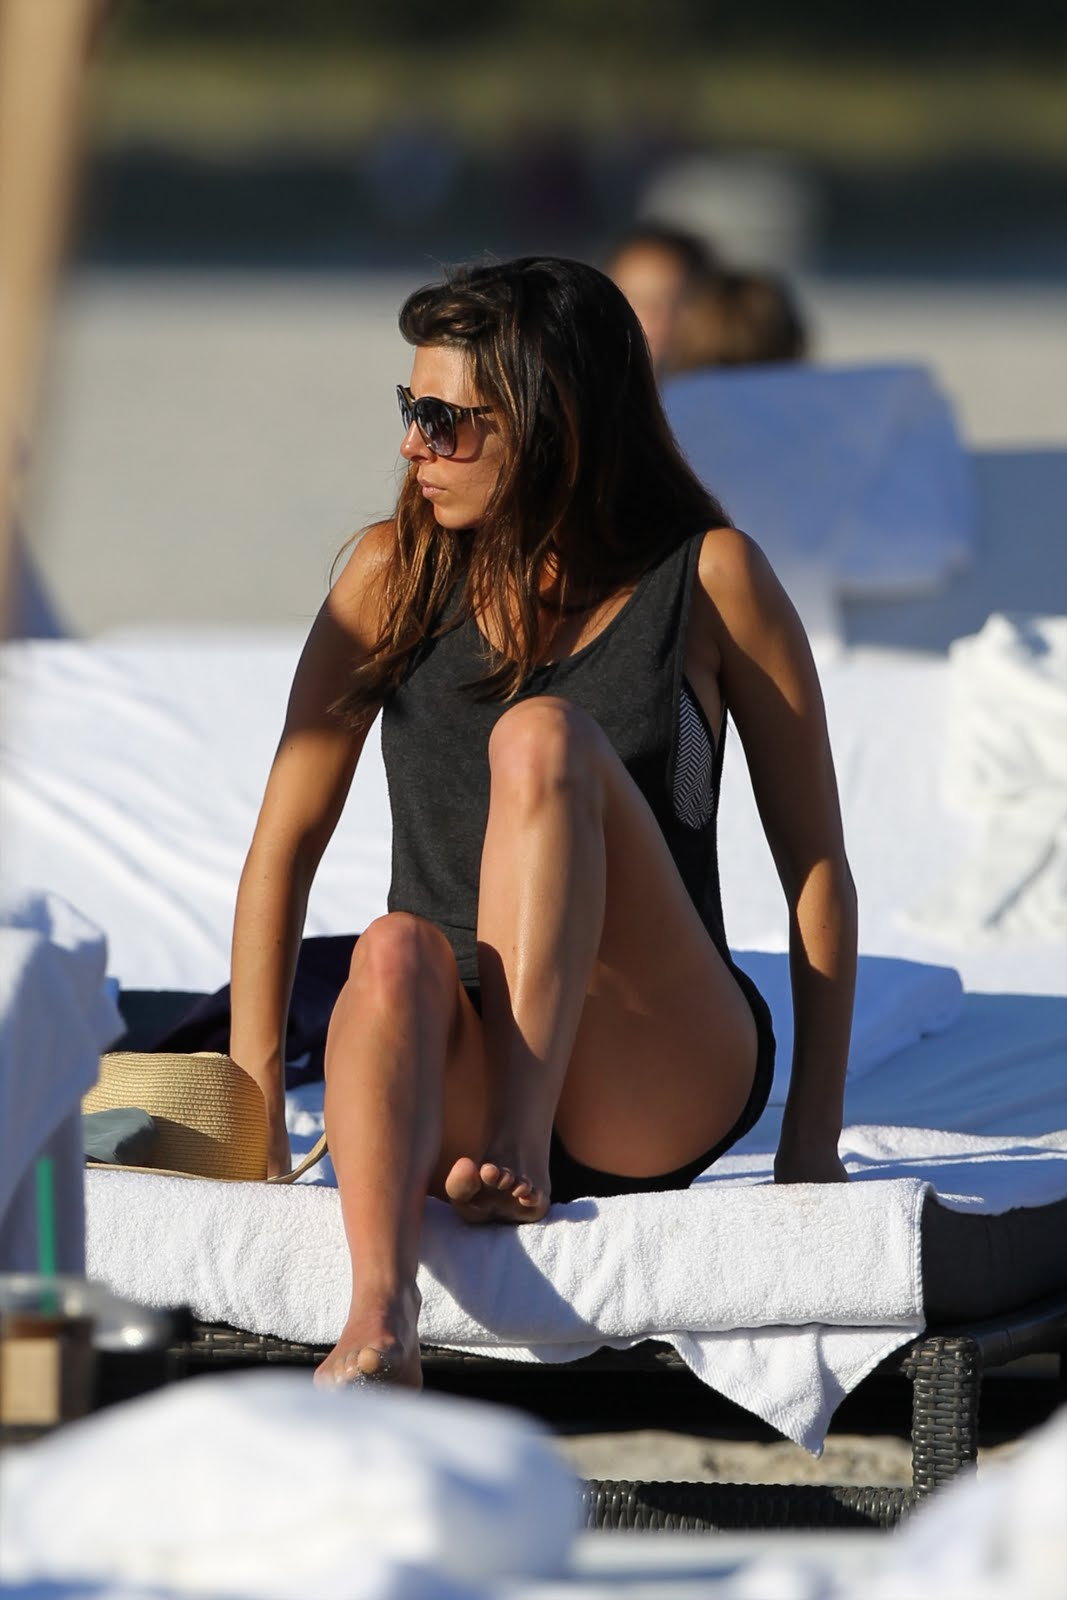 http://3.bp.blogspot.com/-6EW8RfOtKUw/Tv_jV5Aev-I/AAAAAAAAUaQ/WuzPDad_Ysw/s1600/25801_Jamie_Lynn_Sigler_Candids_on_the_Beach_in_Miami_December_30_2011_04_122_440lo.jpg